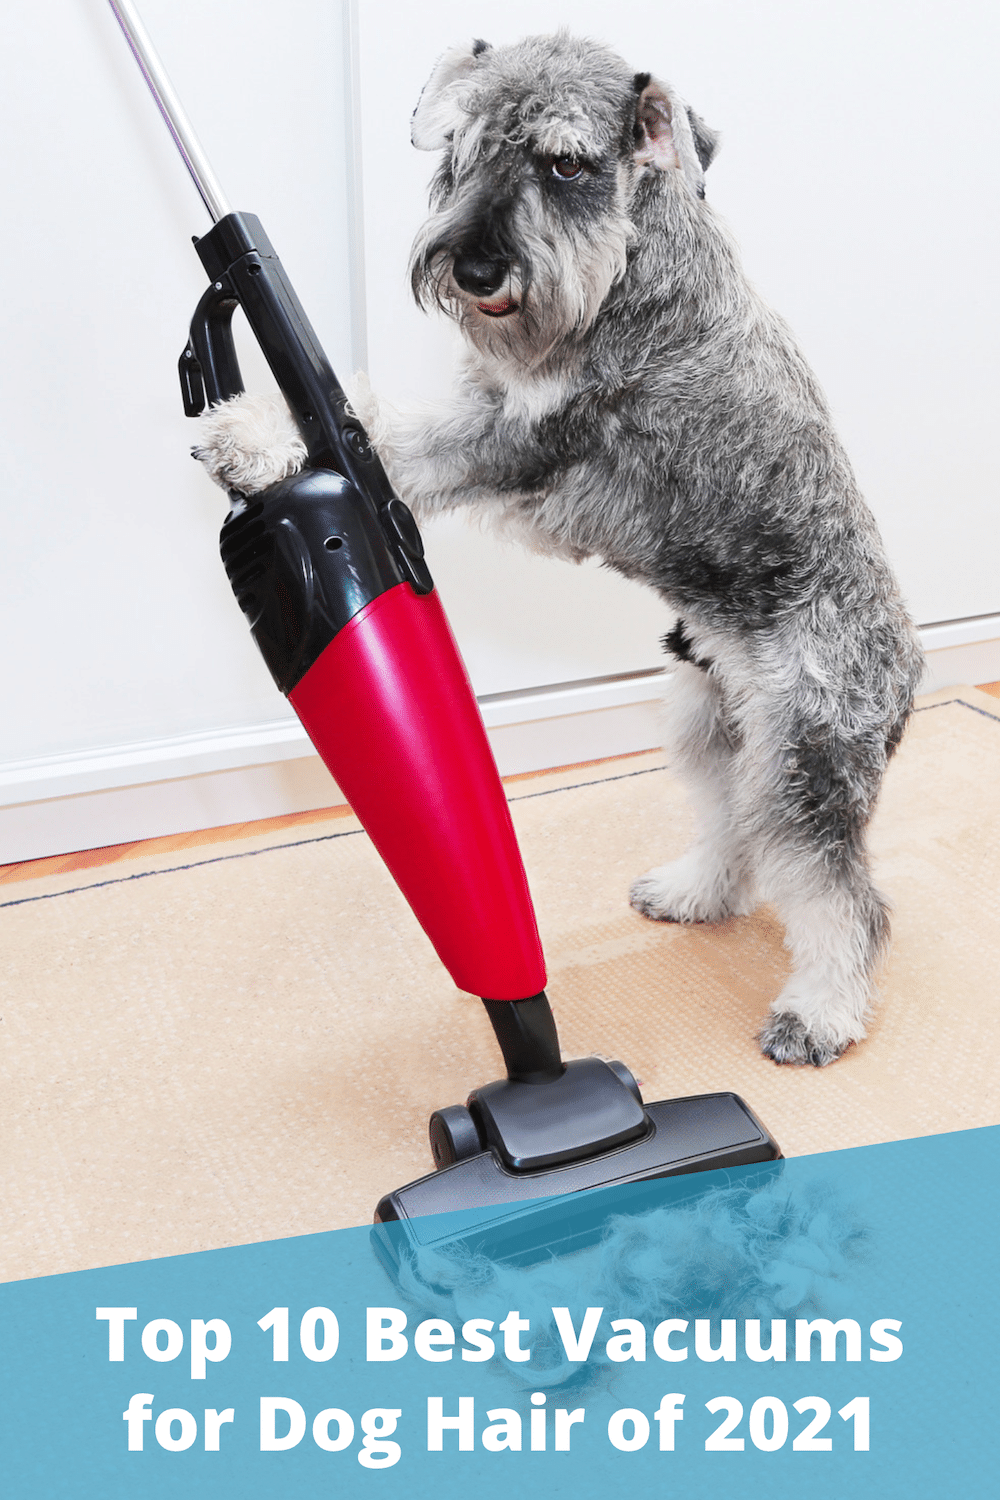 10 Best Vacuums for Dog Hair (2021 Reviews and Buyer's Guide)